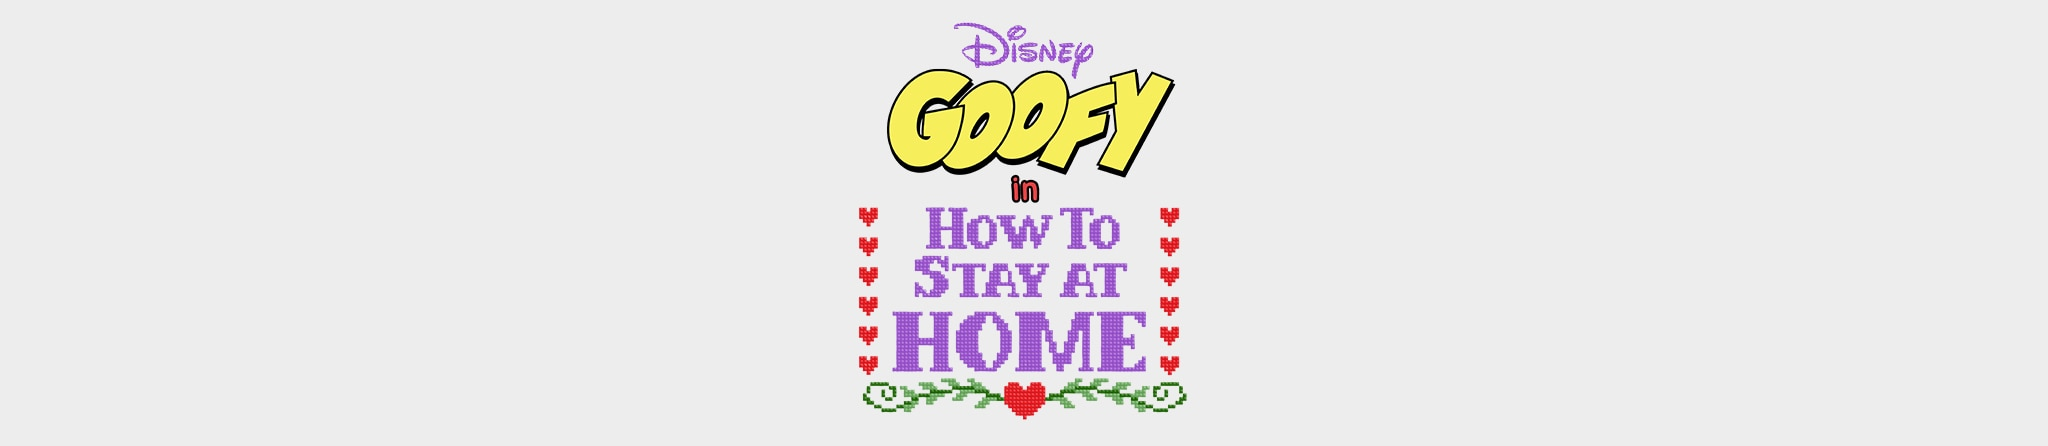 Disney | Goofy: How to Stay at Home